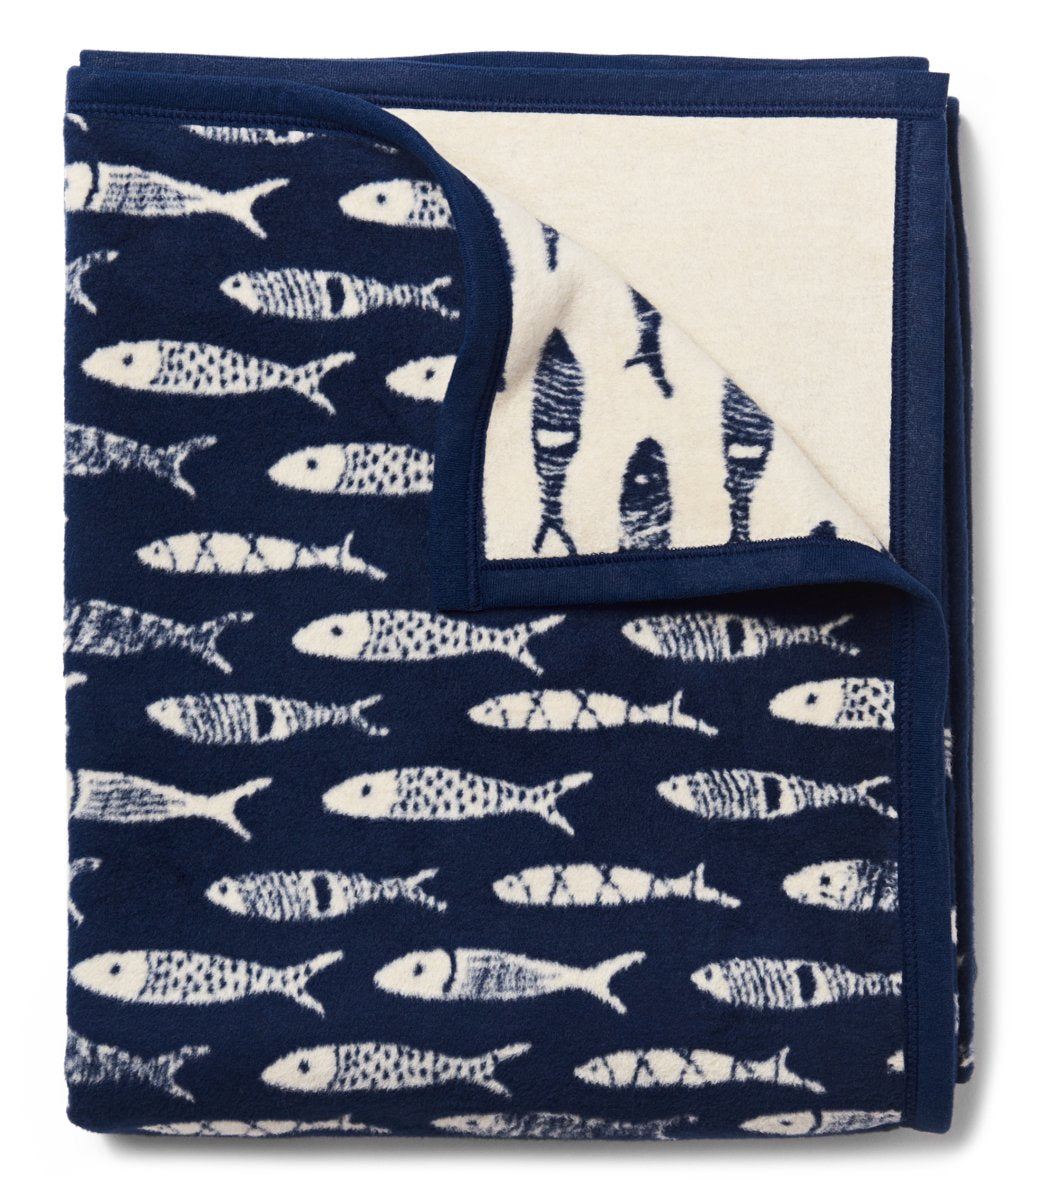 Herring Run Blanket